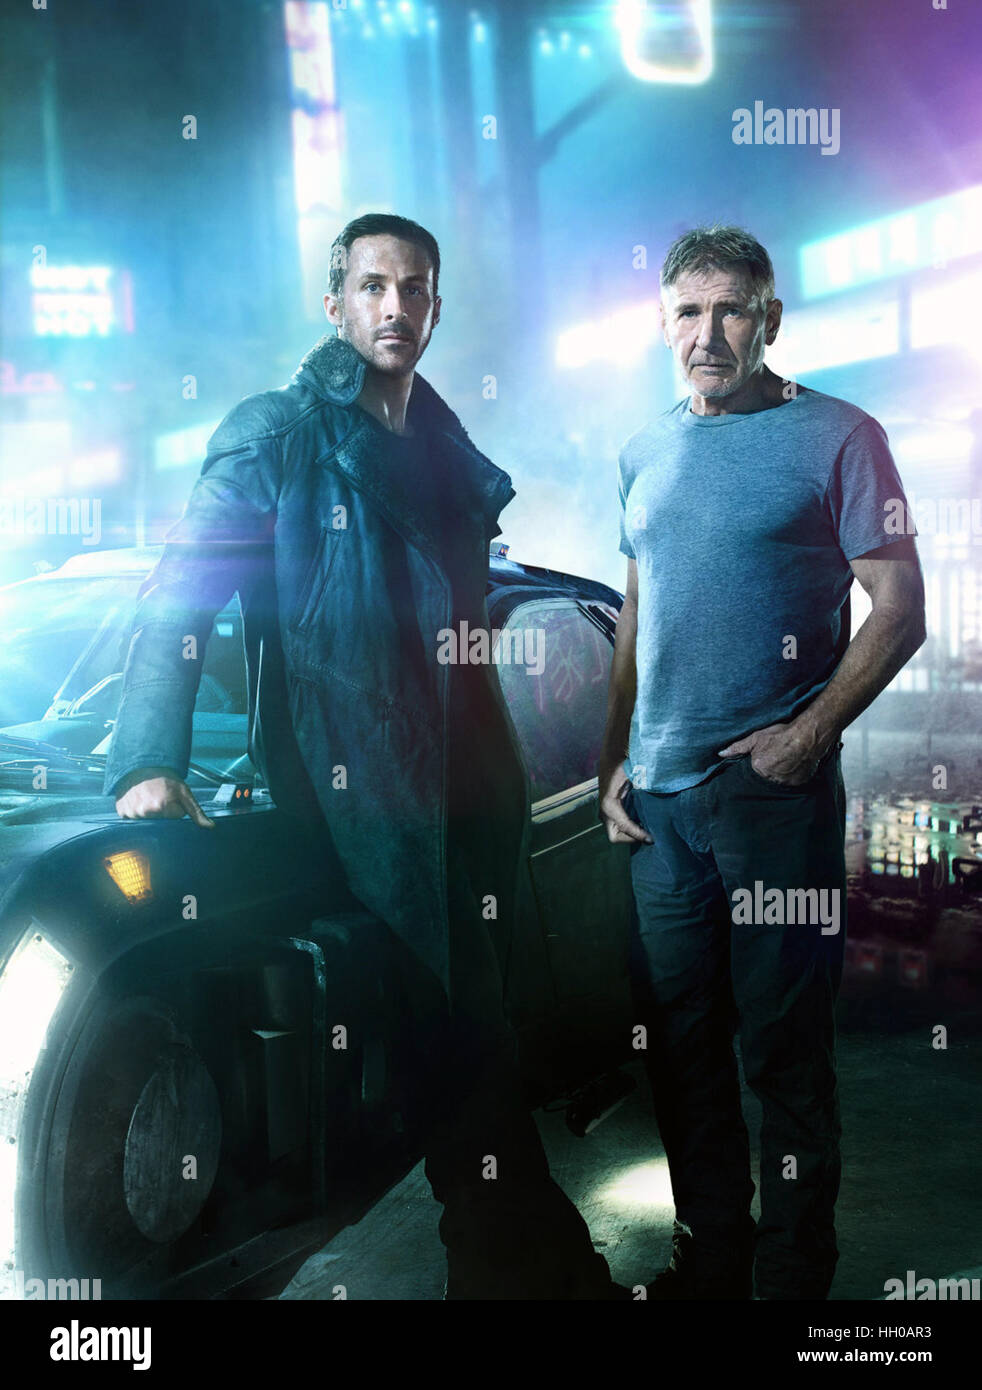 Blade Runner 2049 is an upcoming American science fiction film directed by Denis Villeneuve and produced by Ridley - Stock Image